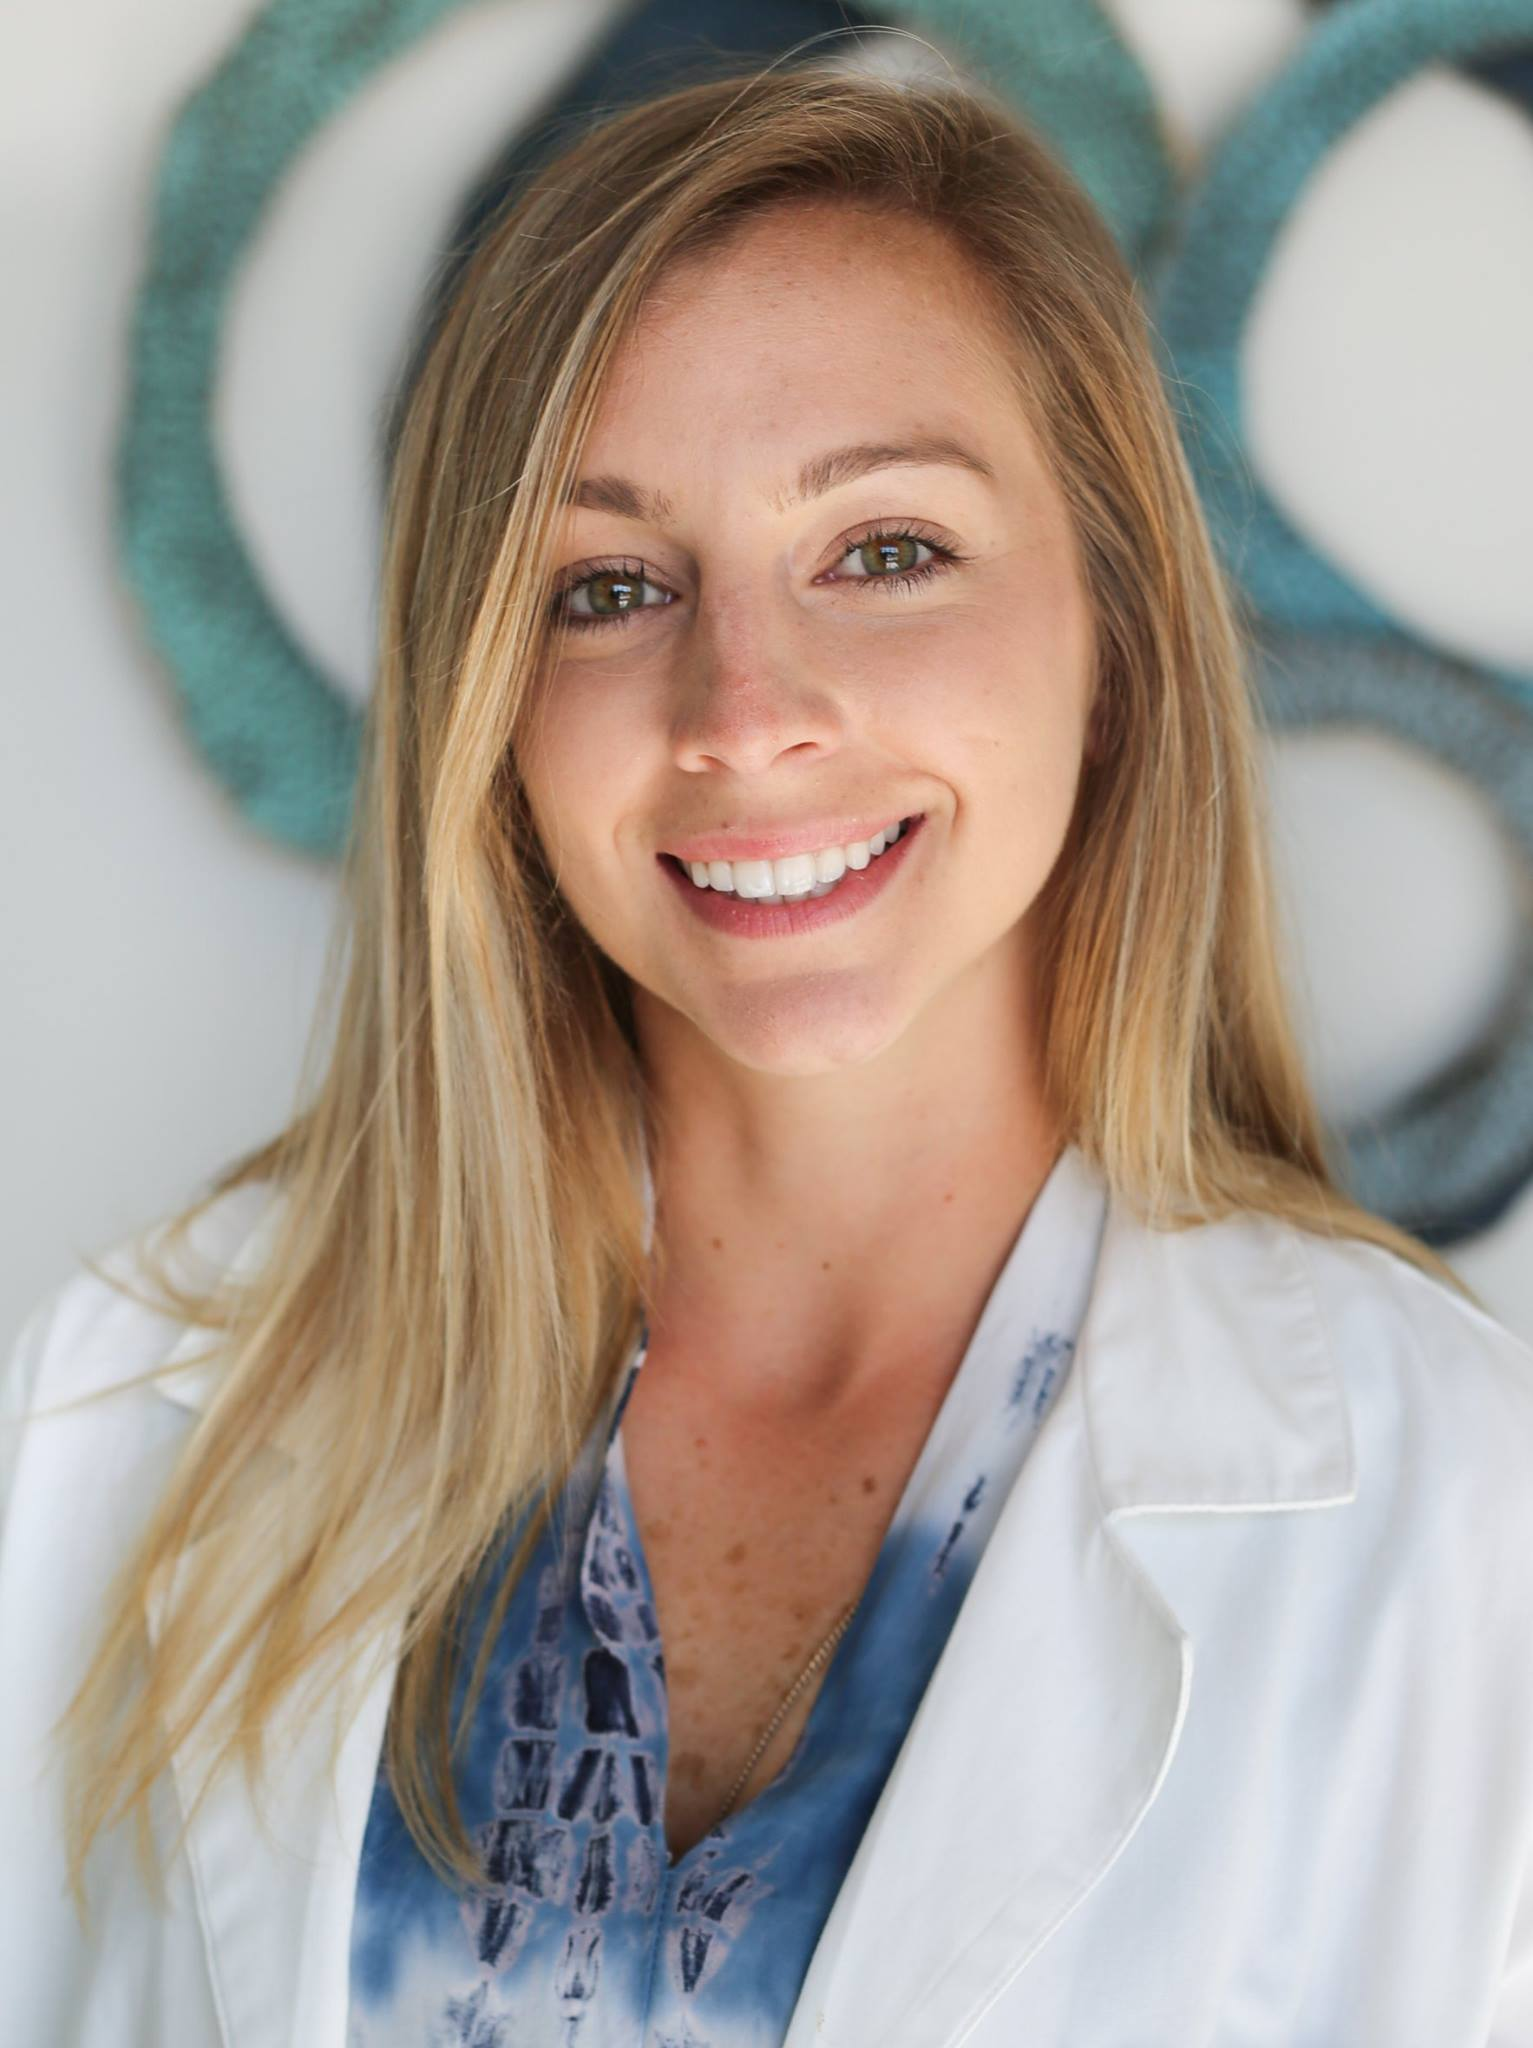 We welcome Allea Francis, PT, DPT as part of our fellowship program.